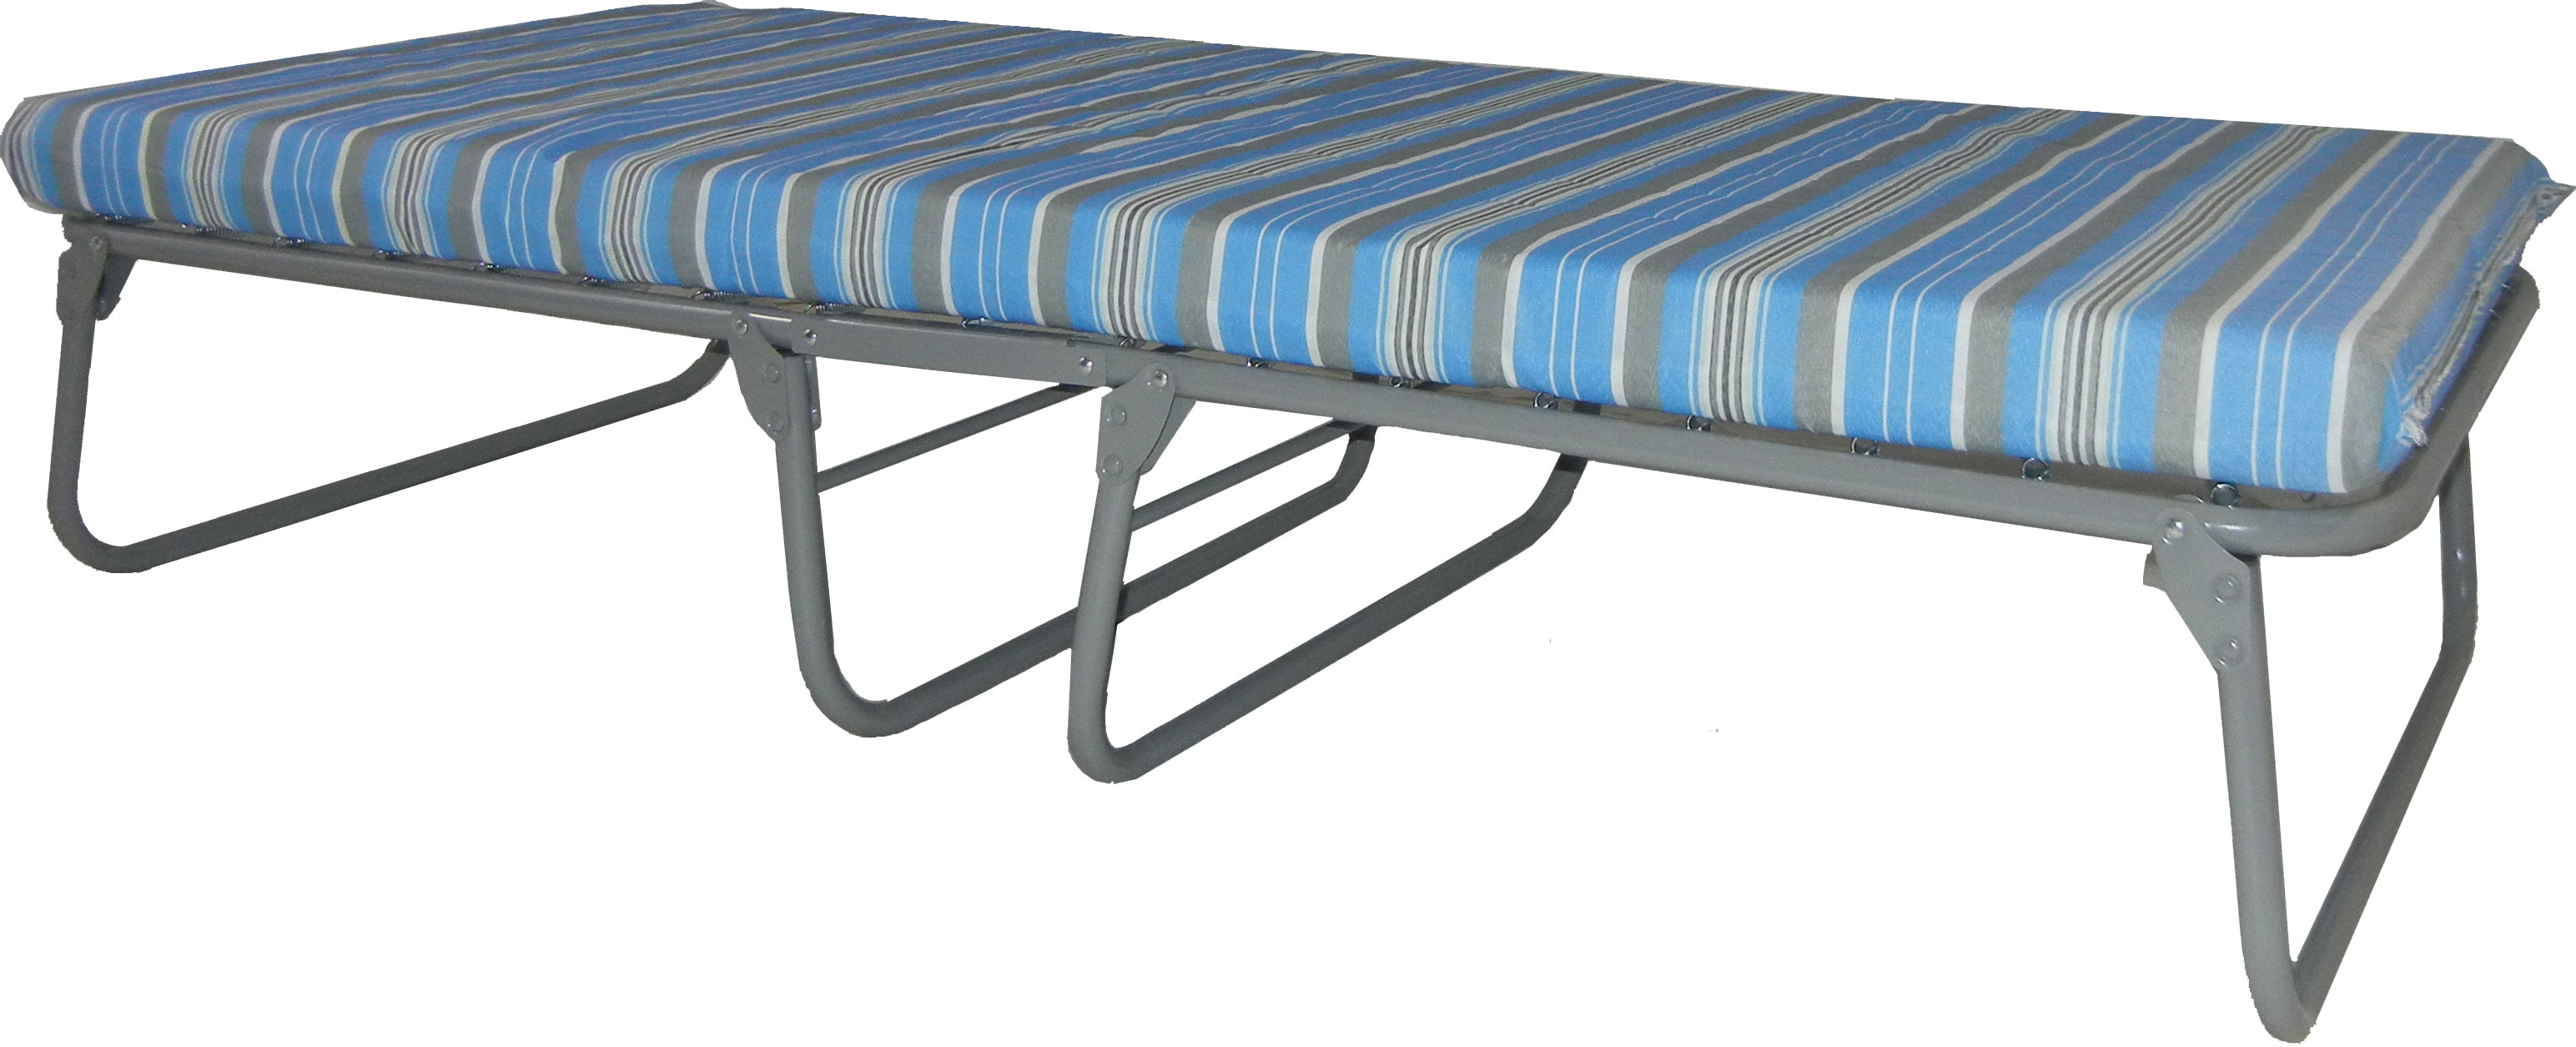 Big W Portable Cot Blantex Heavy Duty Steel Folding Cot 375 Pound Capacity